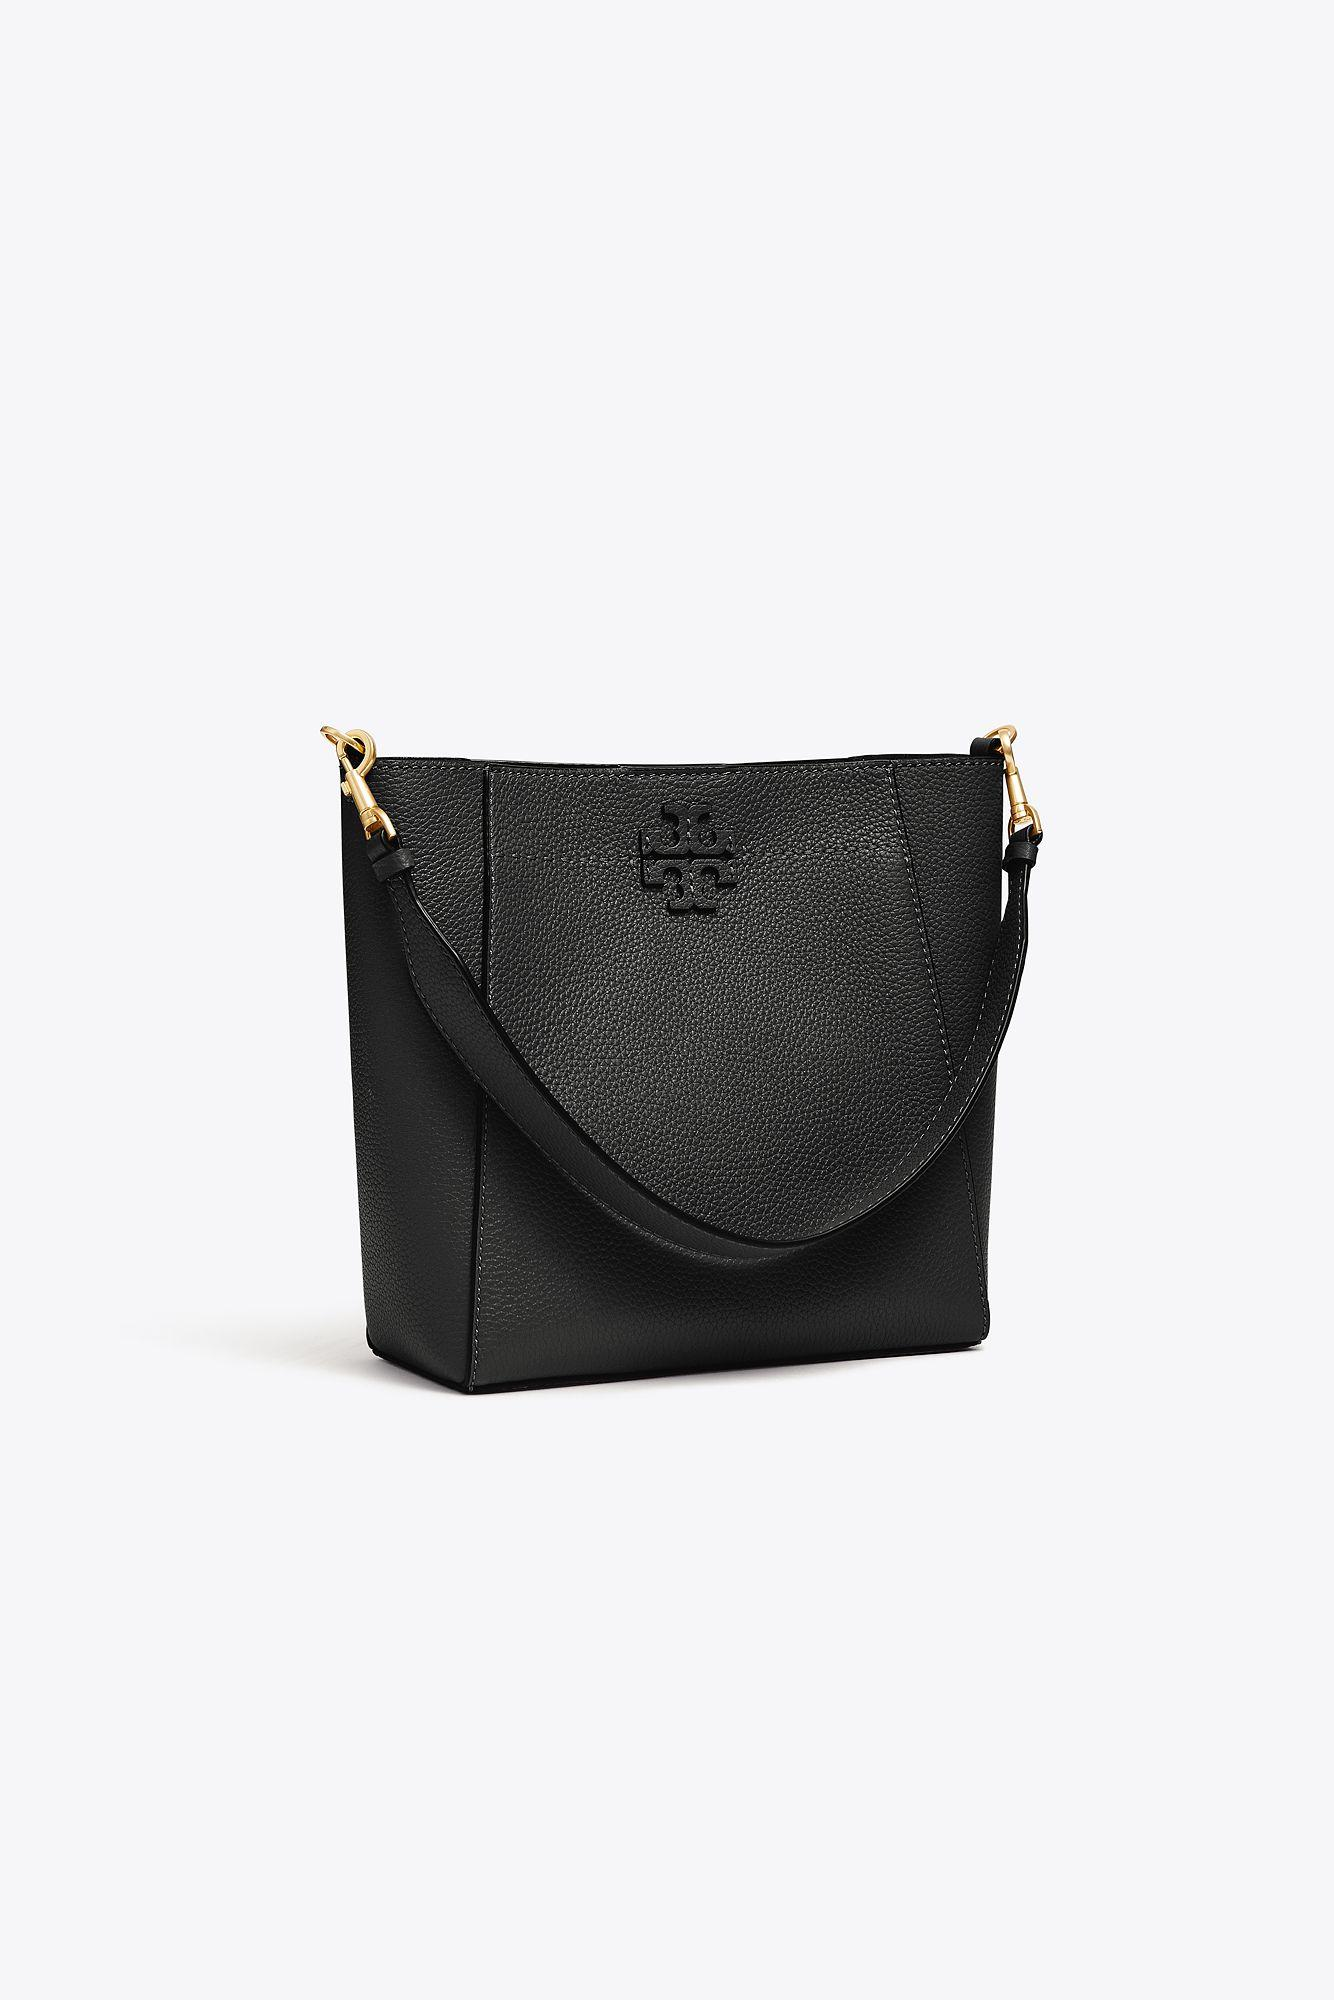 7292adade8e Tory Burch. Women s Black Mcgraw Hobo ...